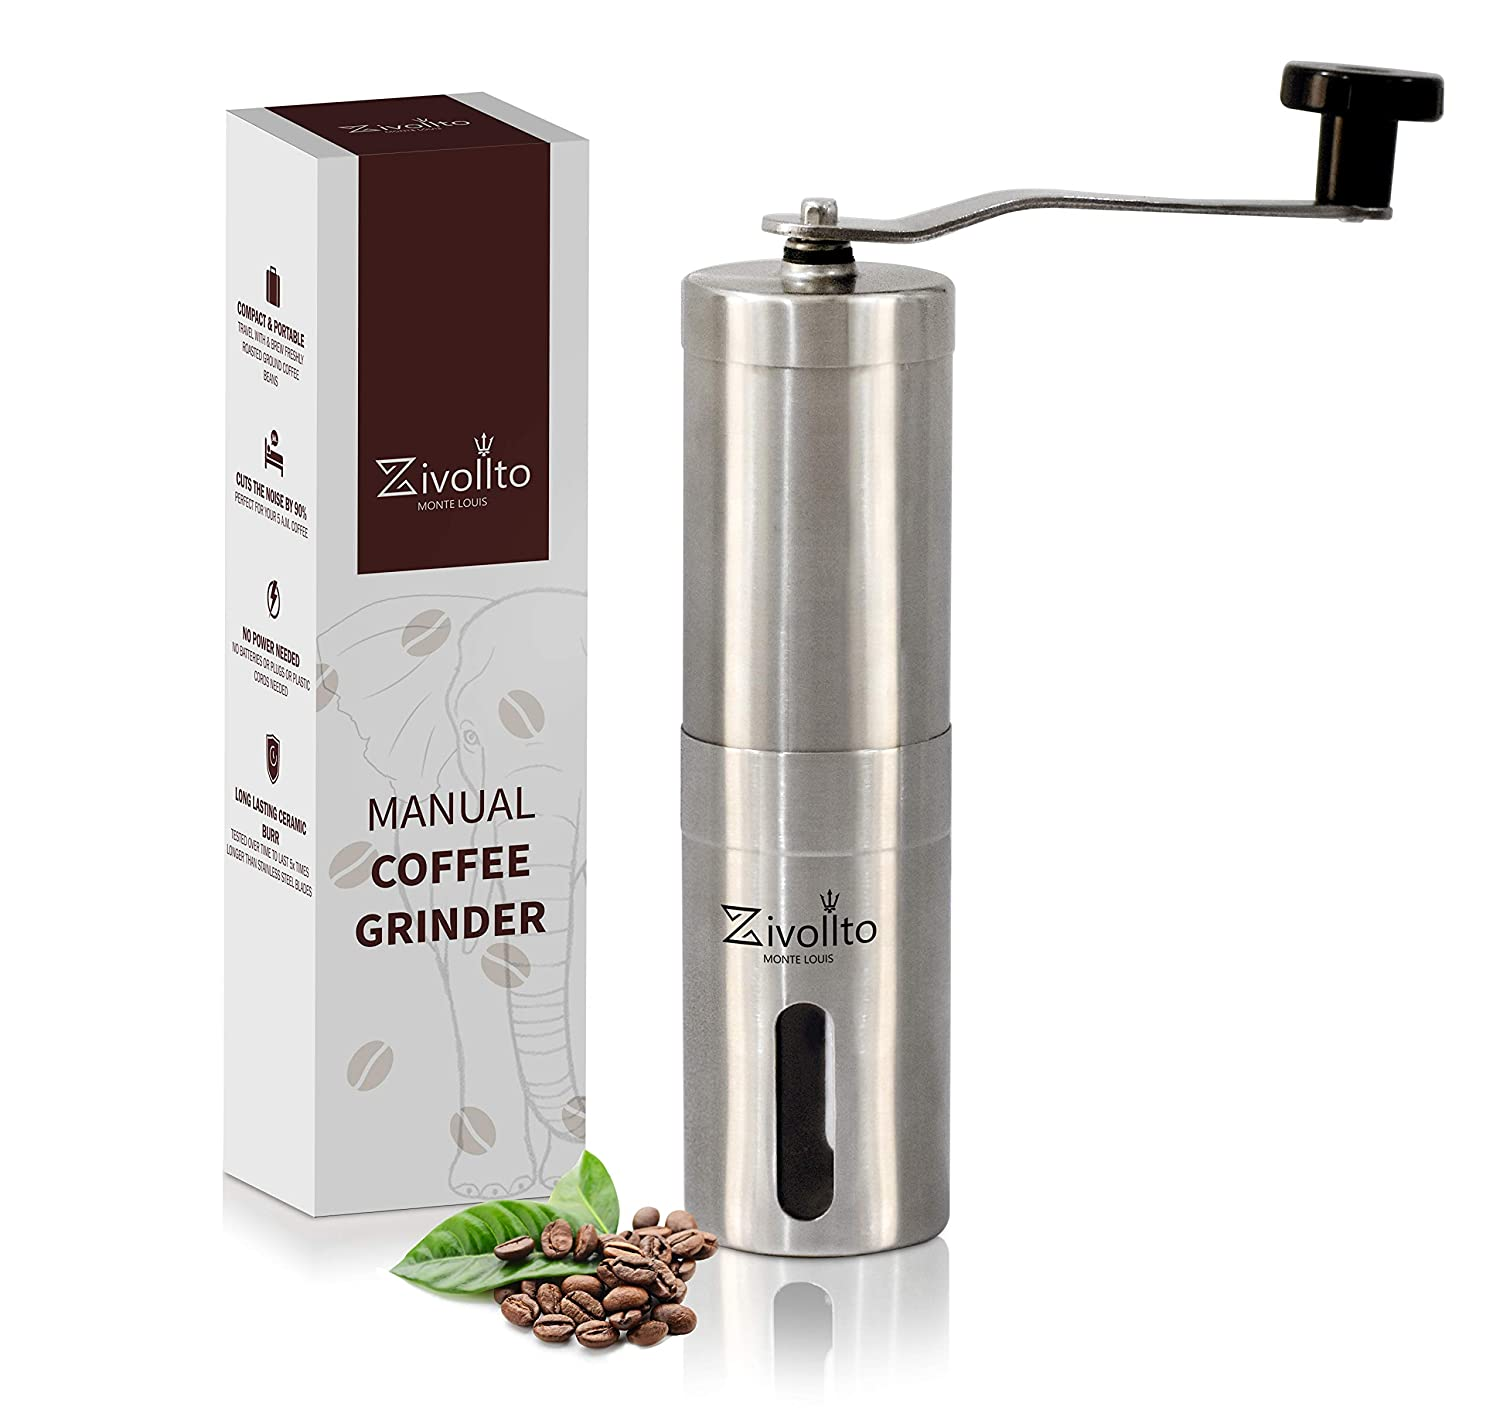 Amazon com: Manual Coffee Grinder by Zivollto - Whole bean